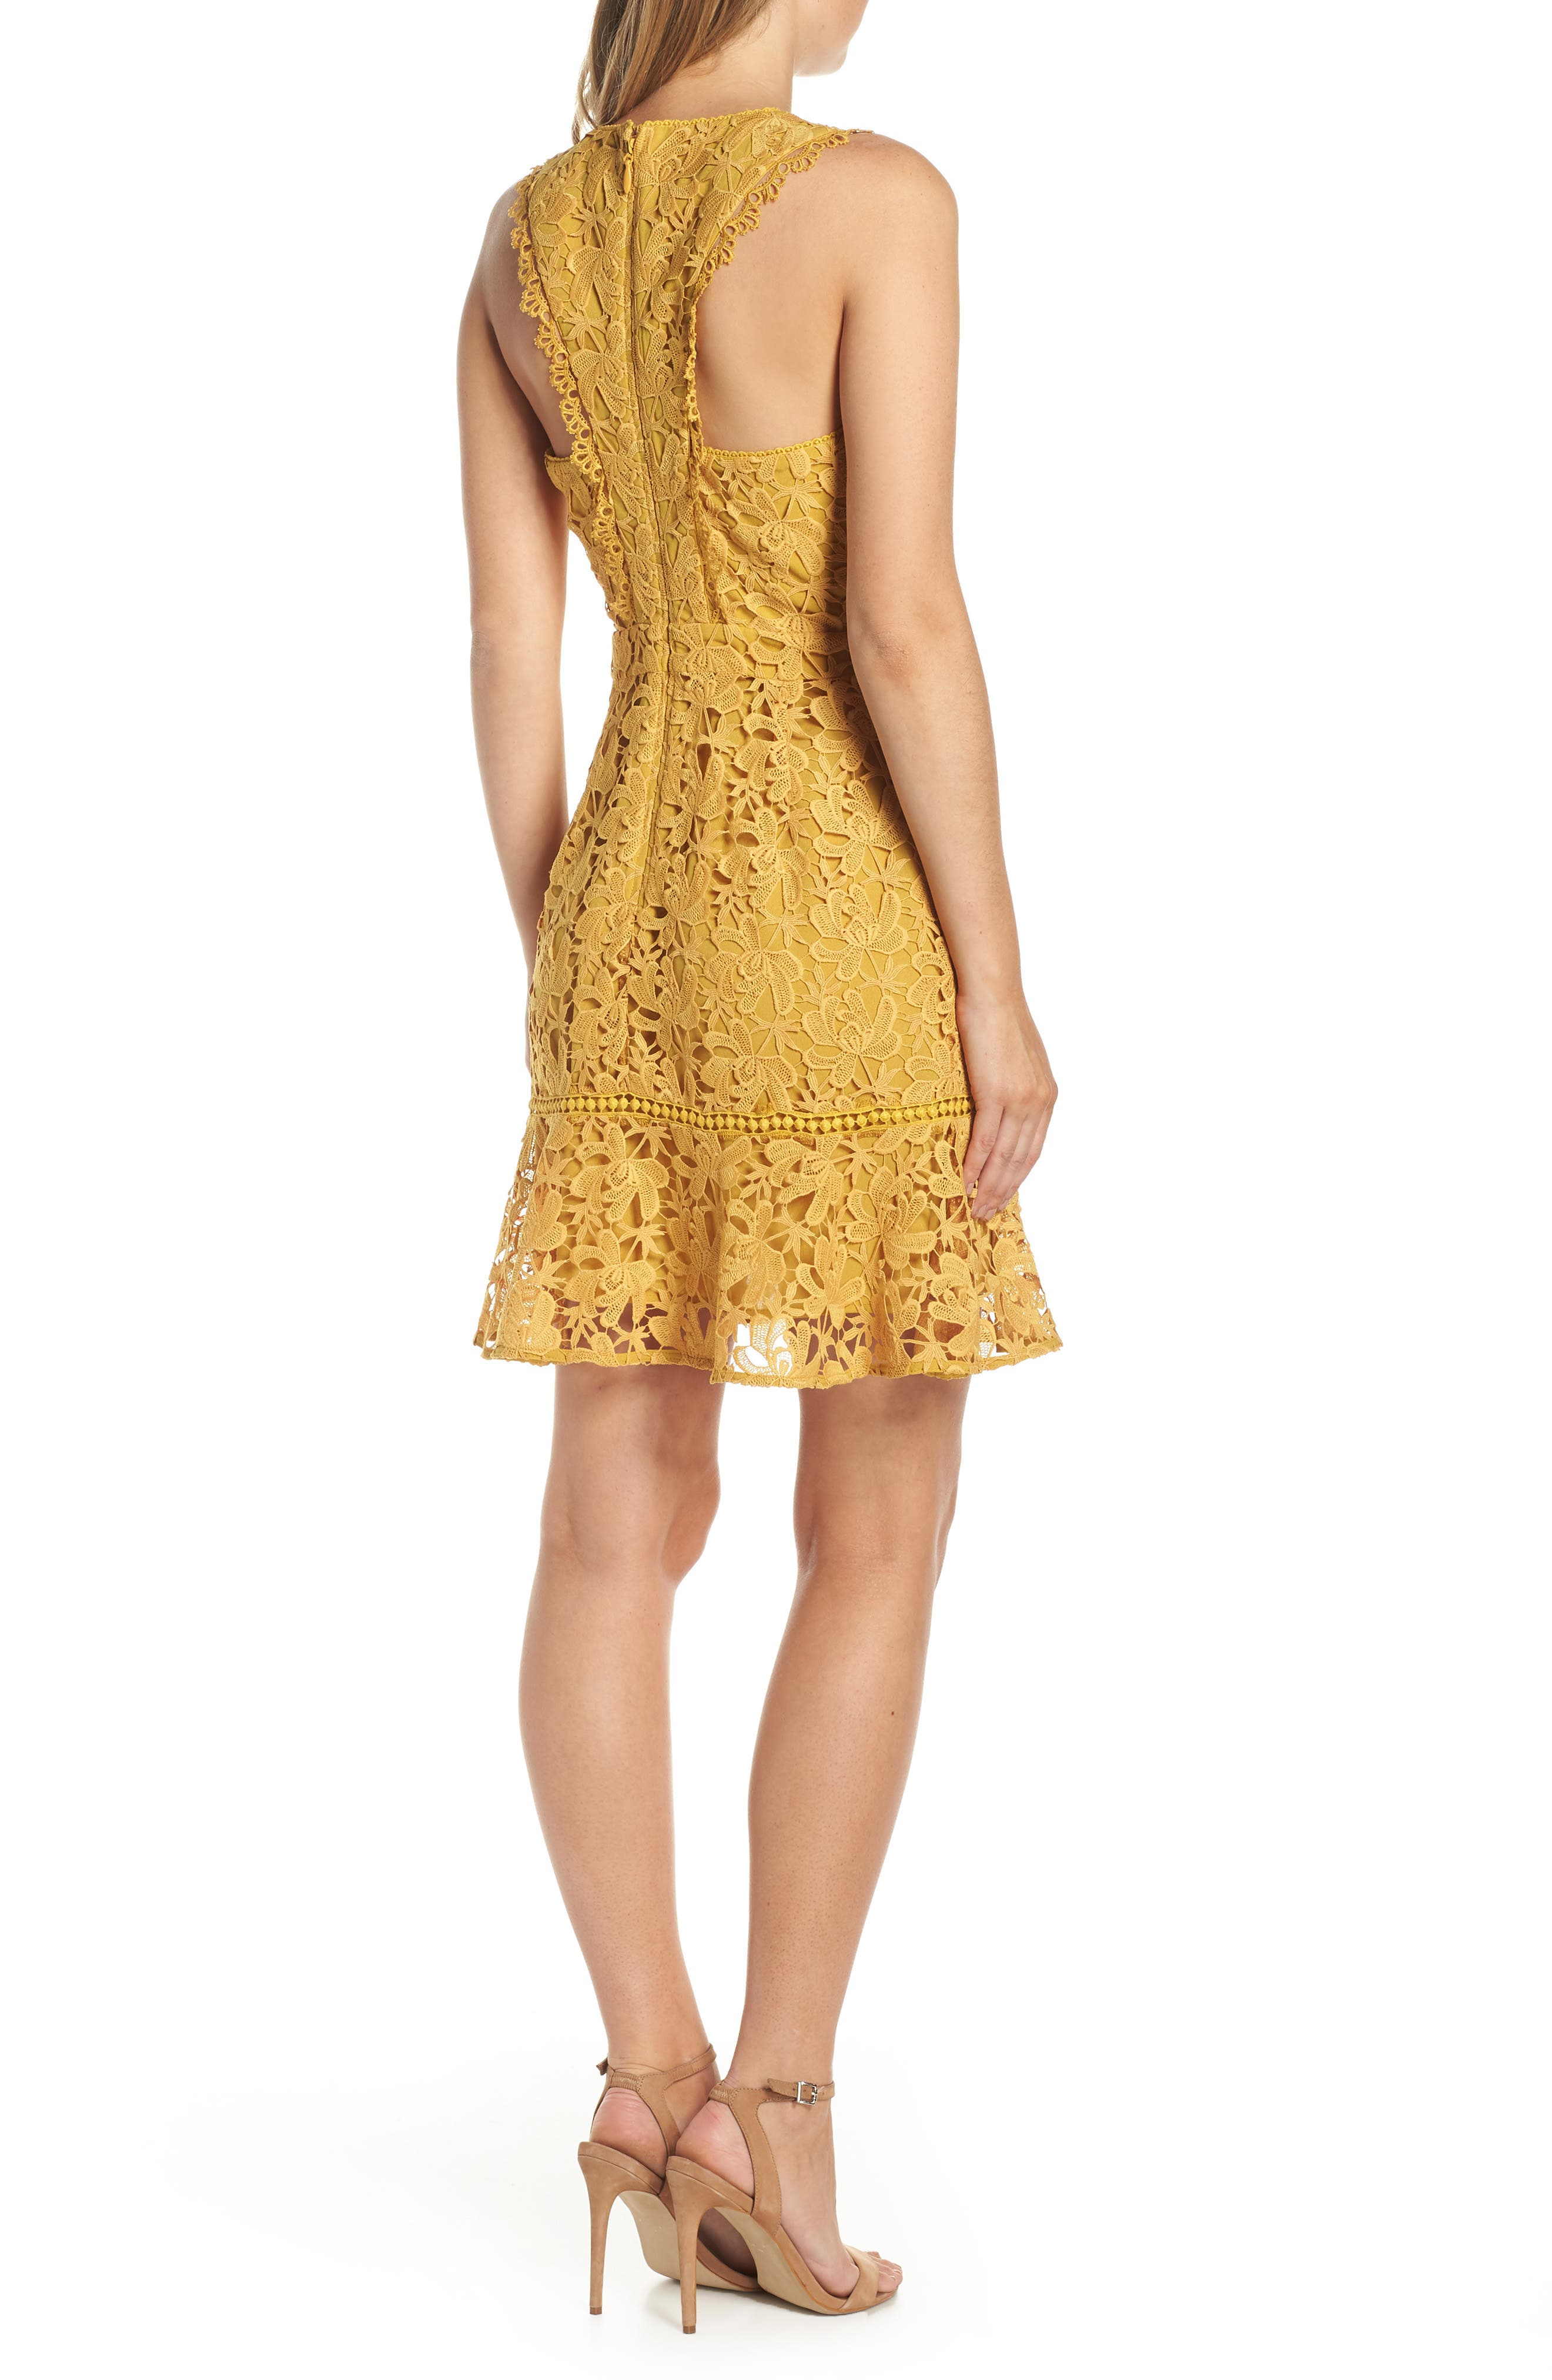 ADELYN RAE,                             Jessie Crisscross Neck Lace Dress,                             Alternate thumbnail 2, color,                             FREESIA